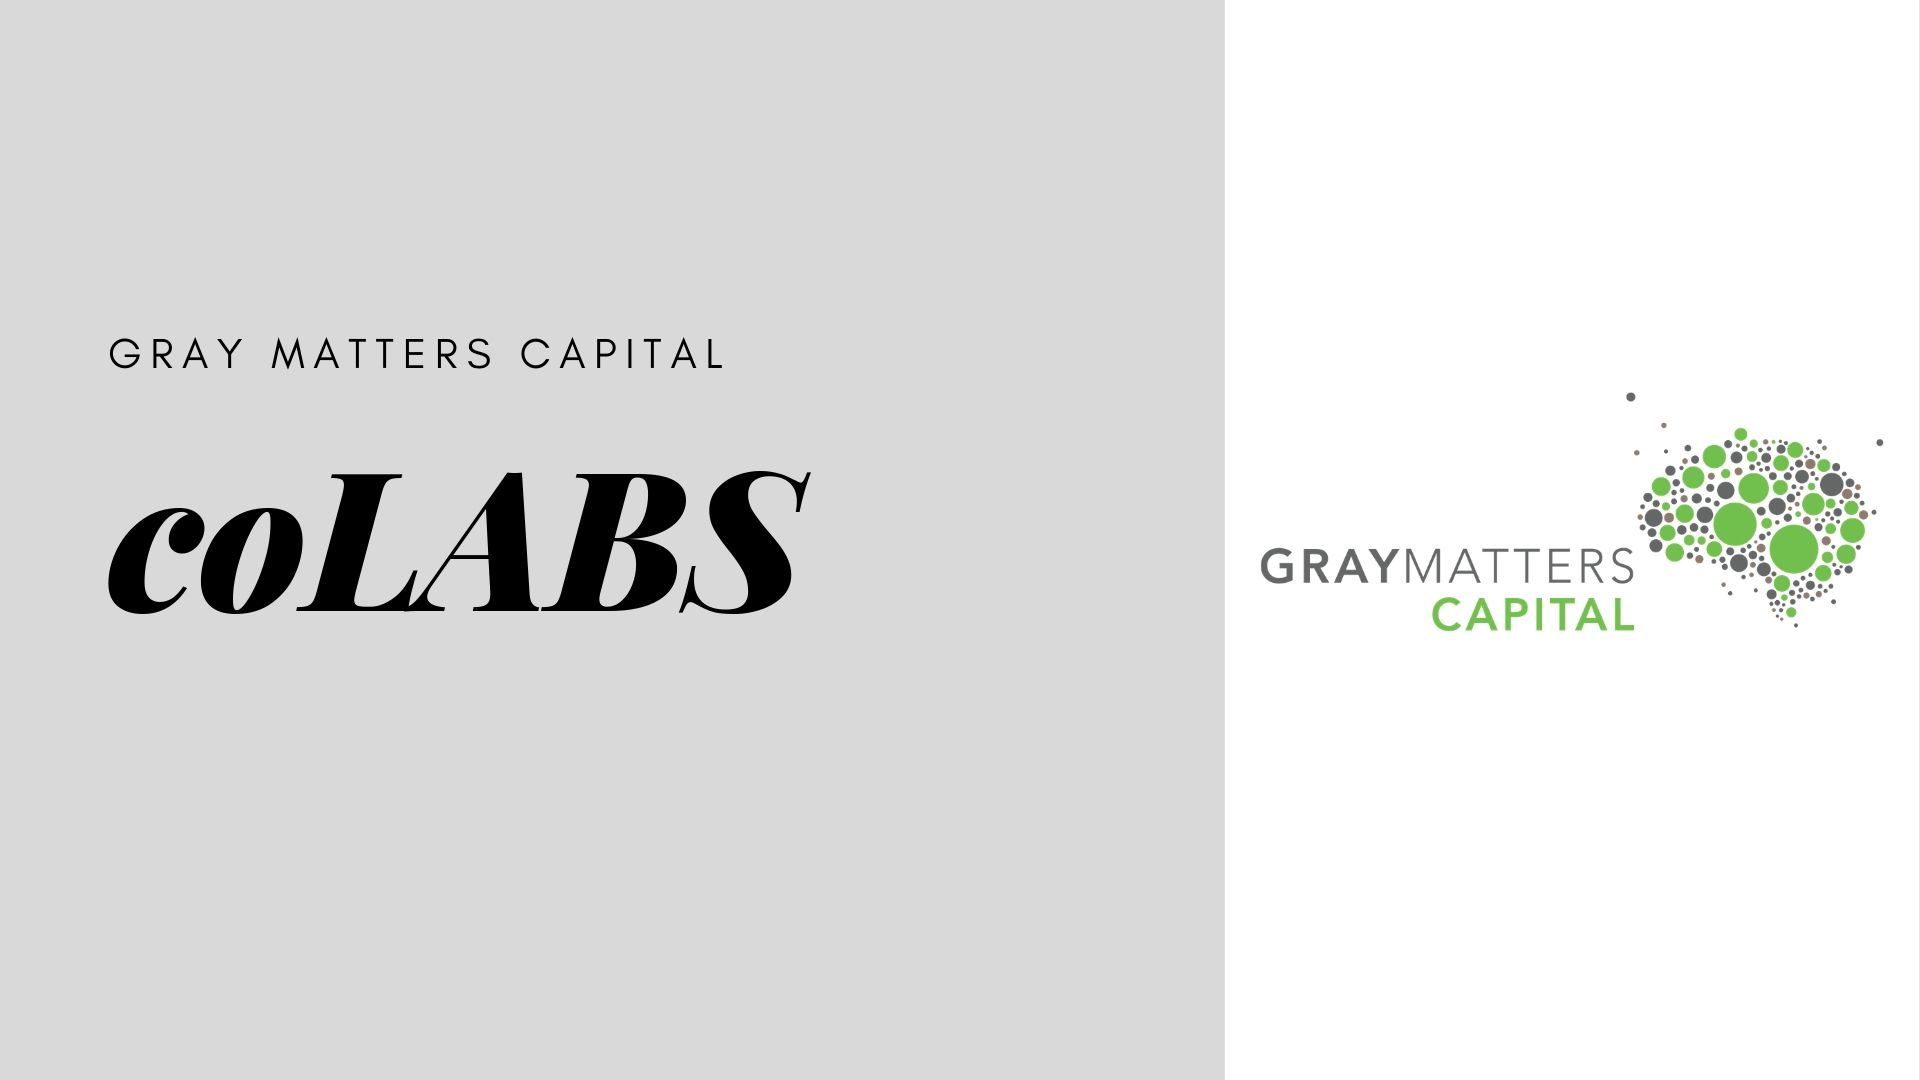 Gray Matters Capital coLABS 2020 for Early-stage Companies (up to $250,000 in seed investment capital)